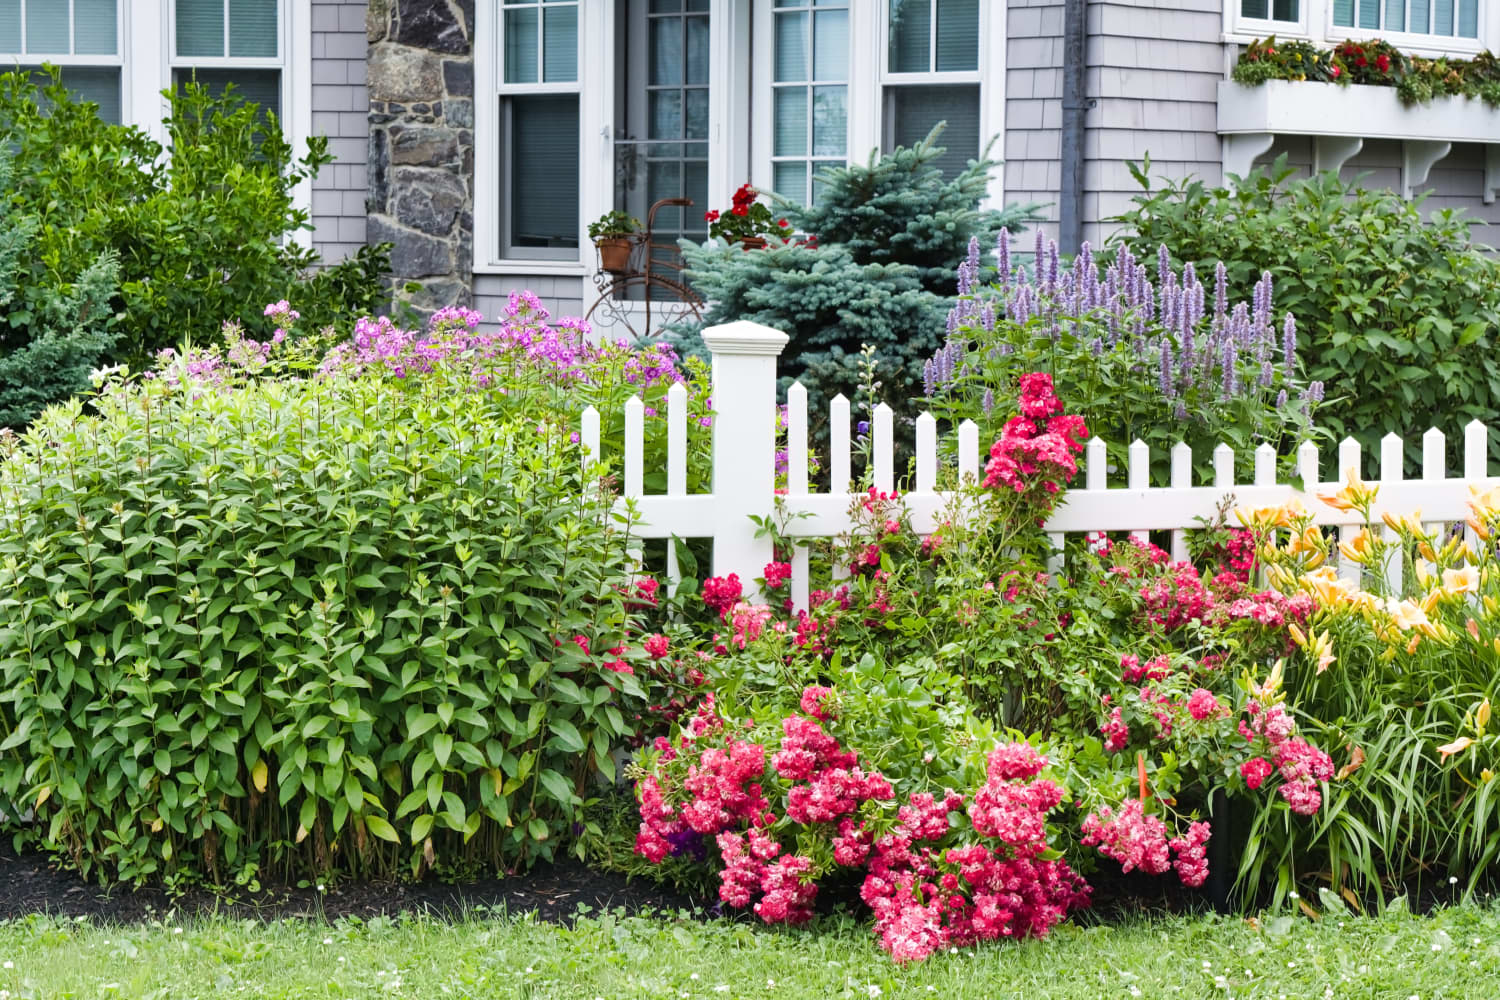 5 Little Landscaping Maneuvers That Can Increase Your Home's Value by Thousands